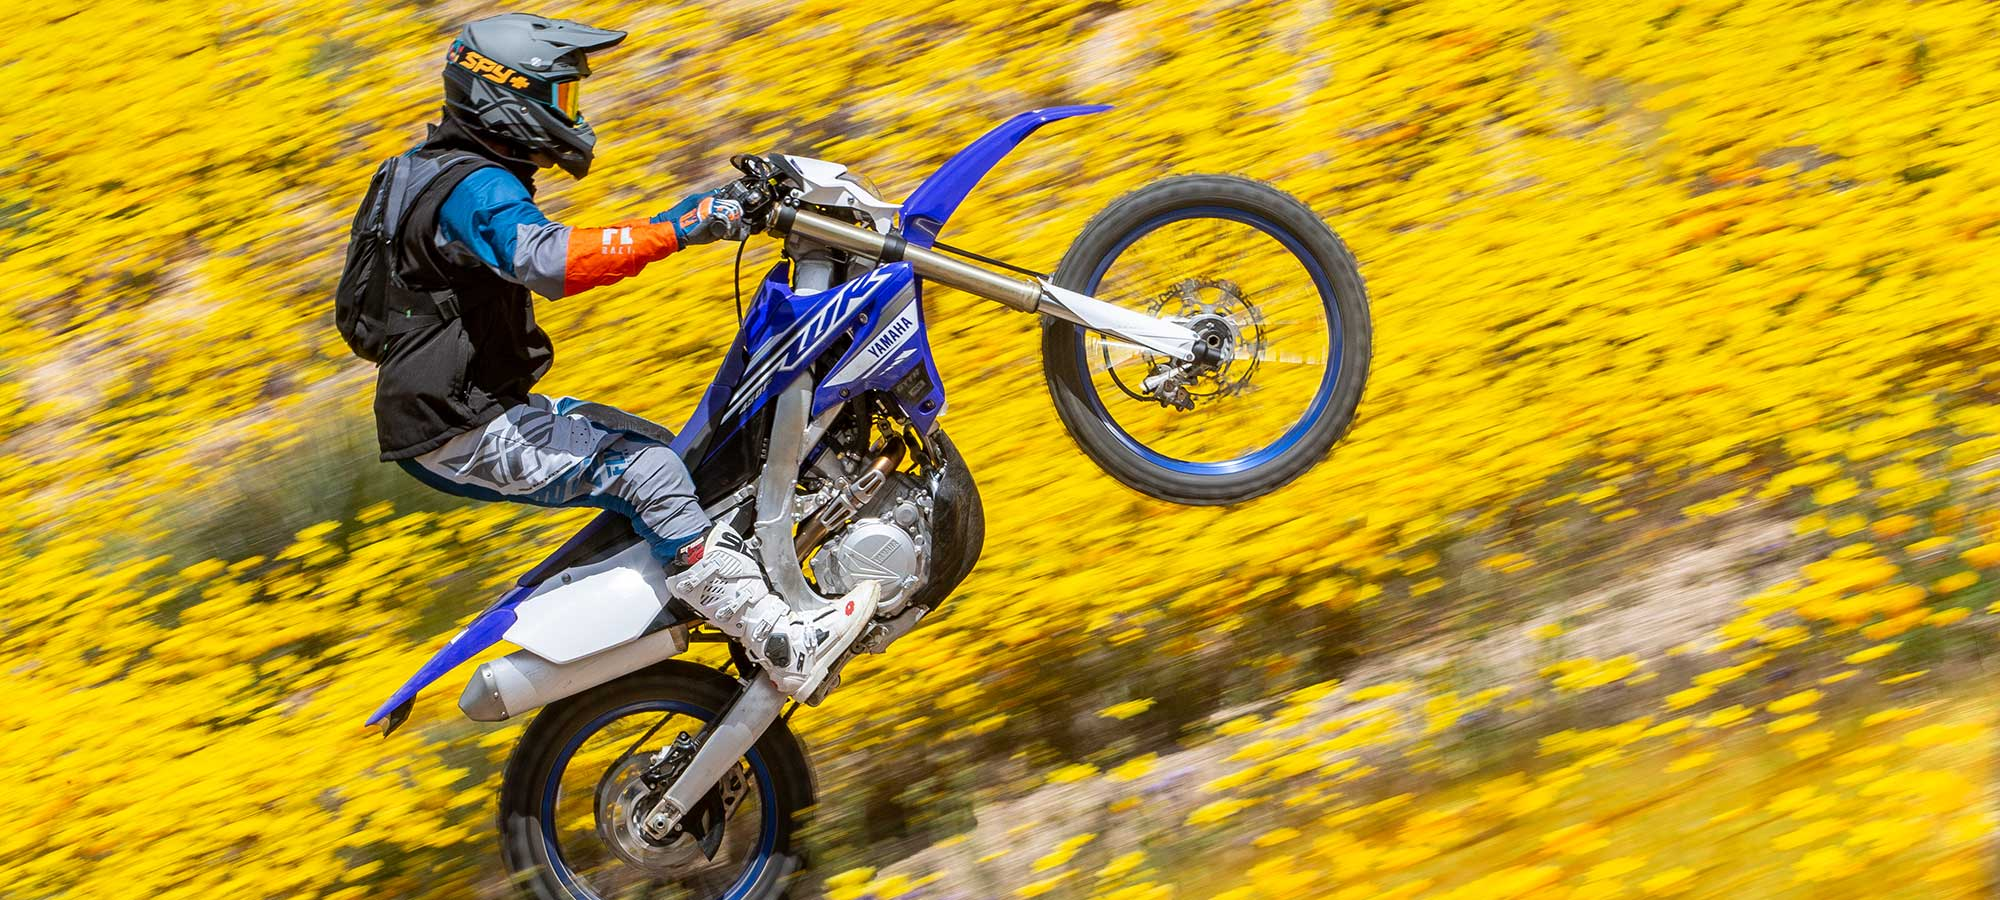 Biker doing wheelie in flowers with 2019 Yamaha WR450F.